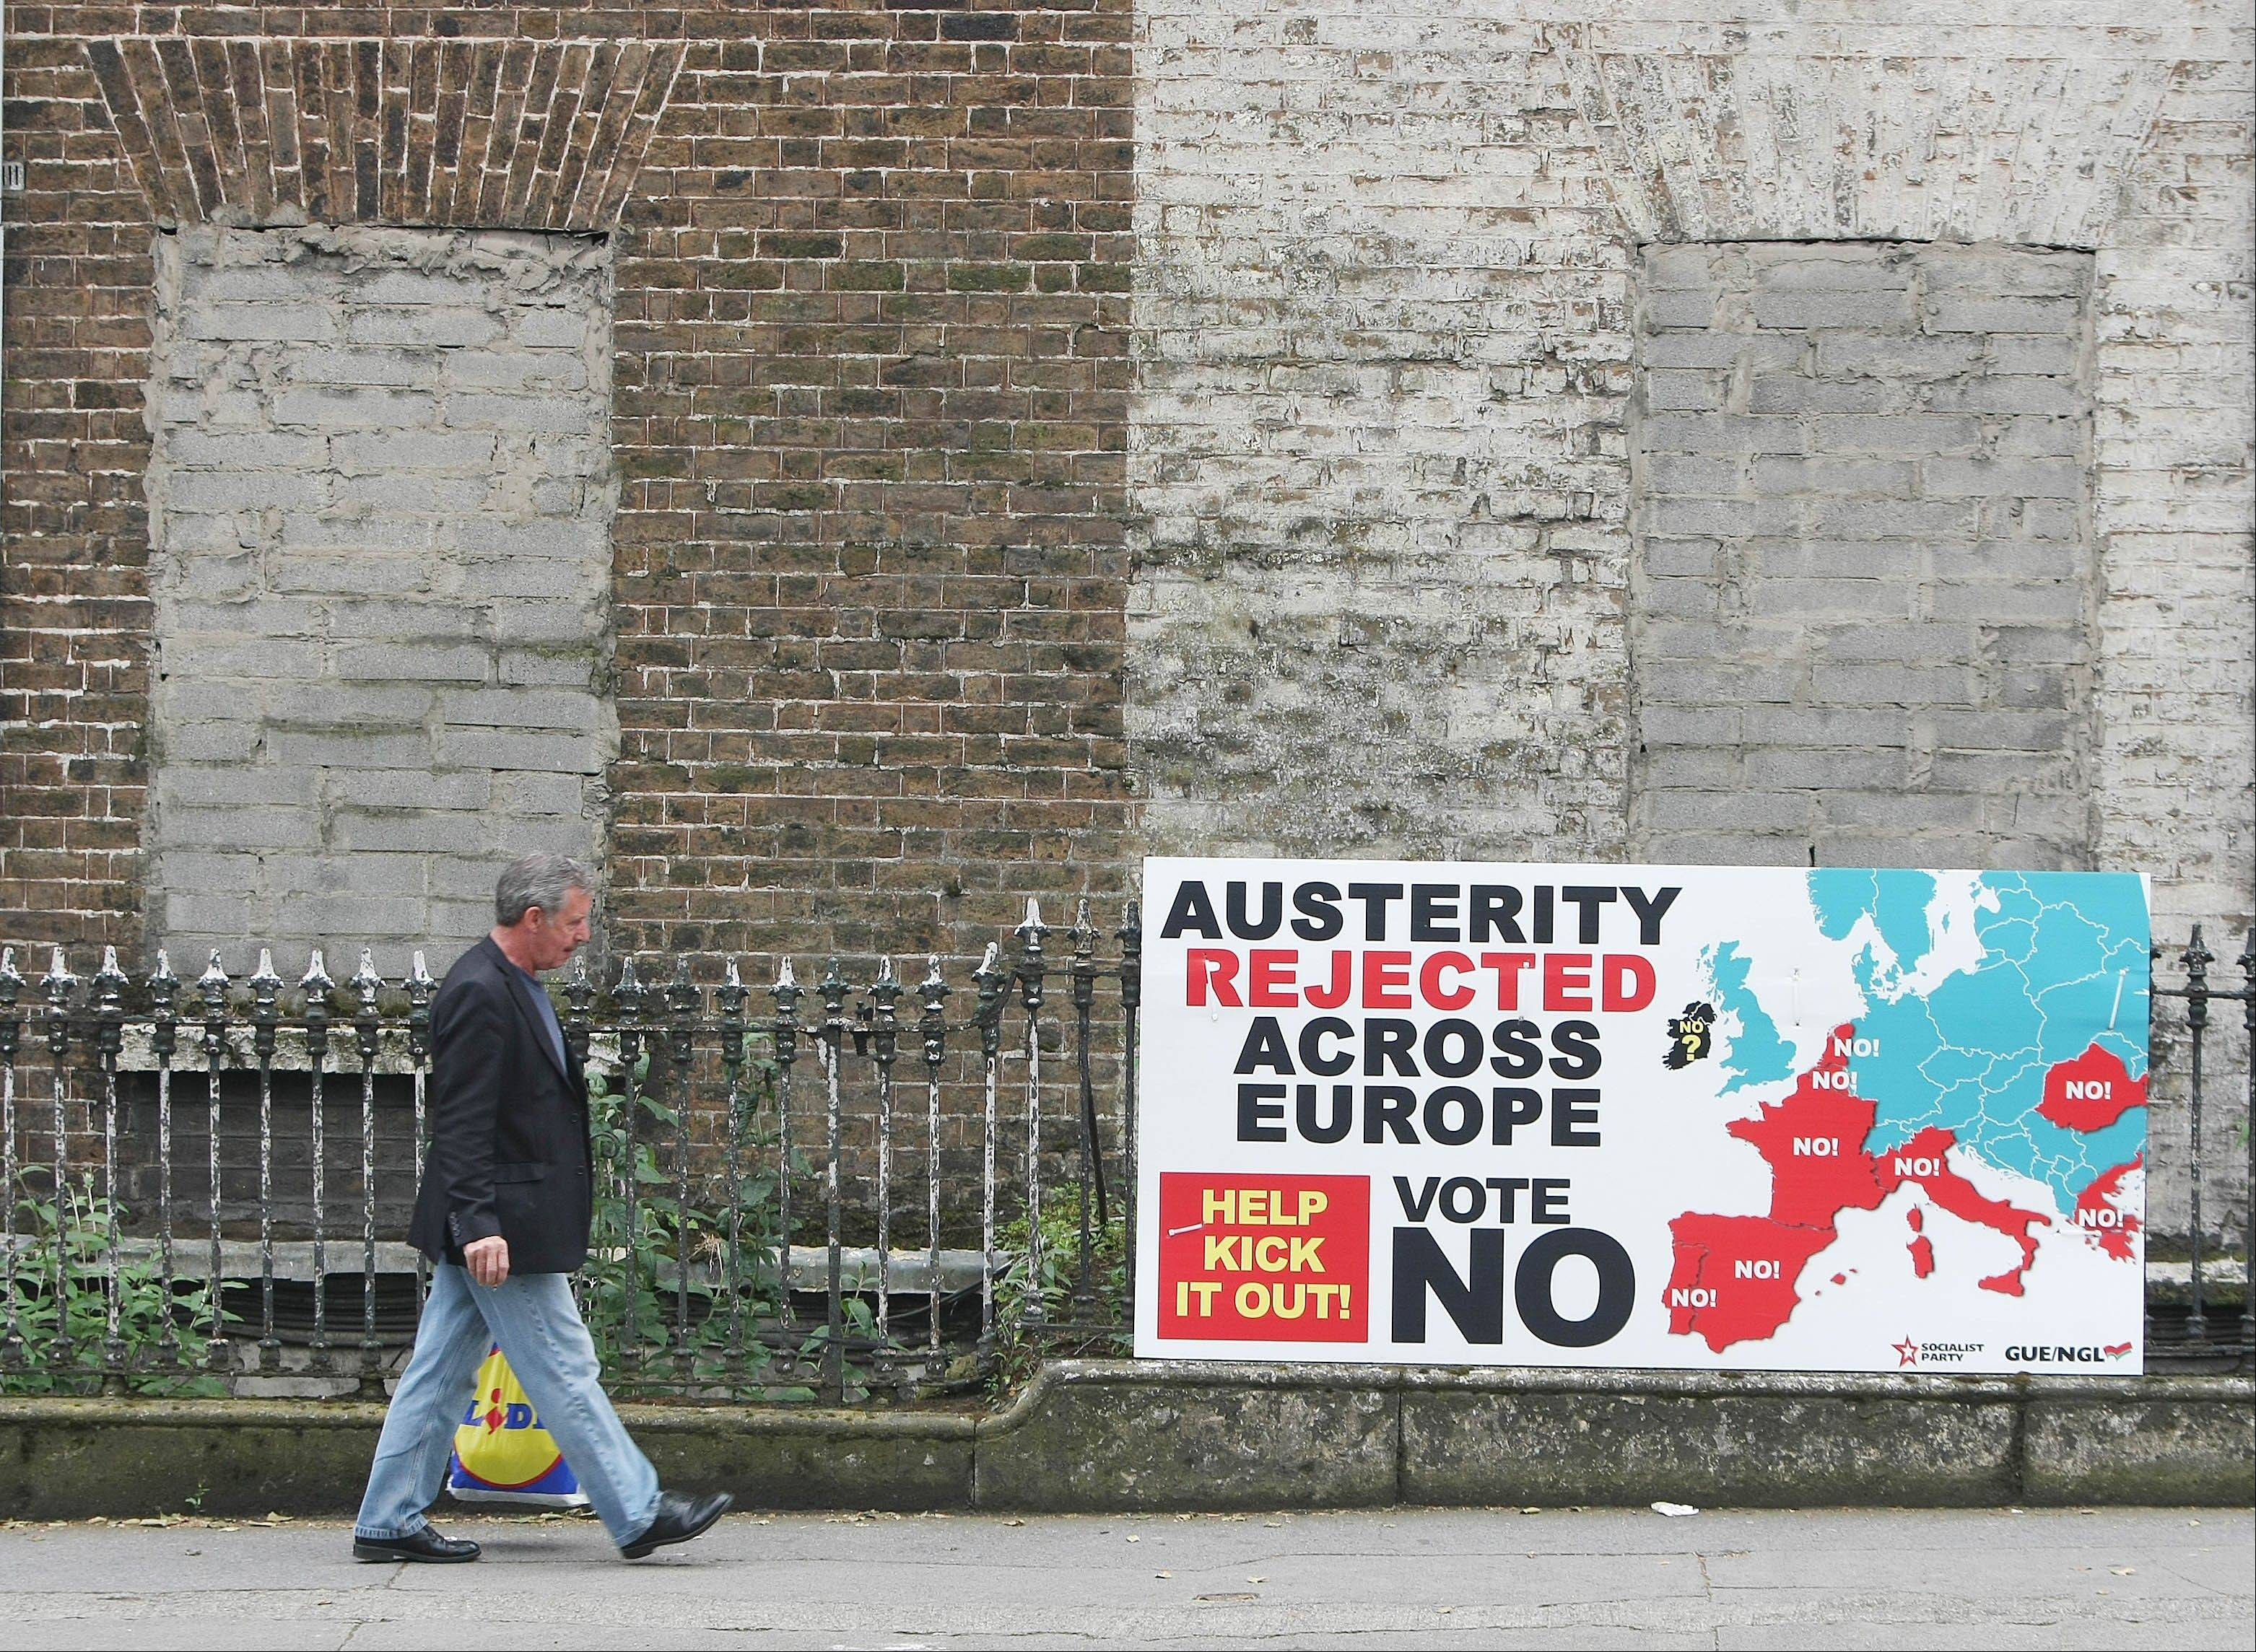 A man walks past a sign against the European Fiscal Treaty in Dublin Wednesday May 30, 2012 ahead of Thursdays referendum. Ireland is the only country in Europe holding a referendum on the treaty as it is obliged to put major EU reforms to the public test according to the Constitution.